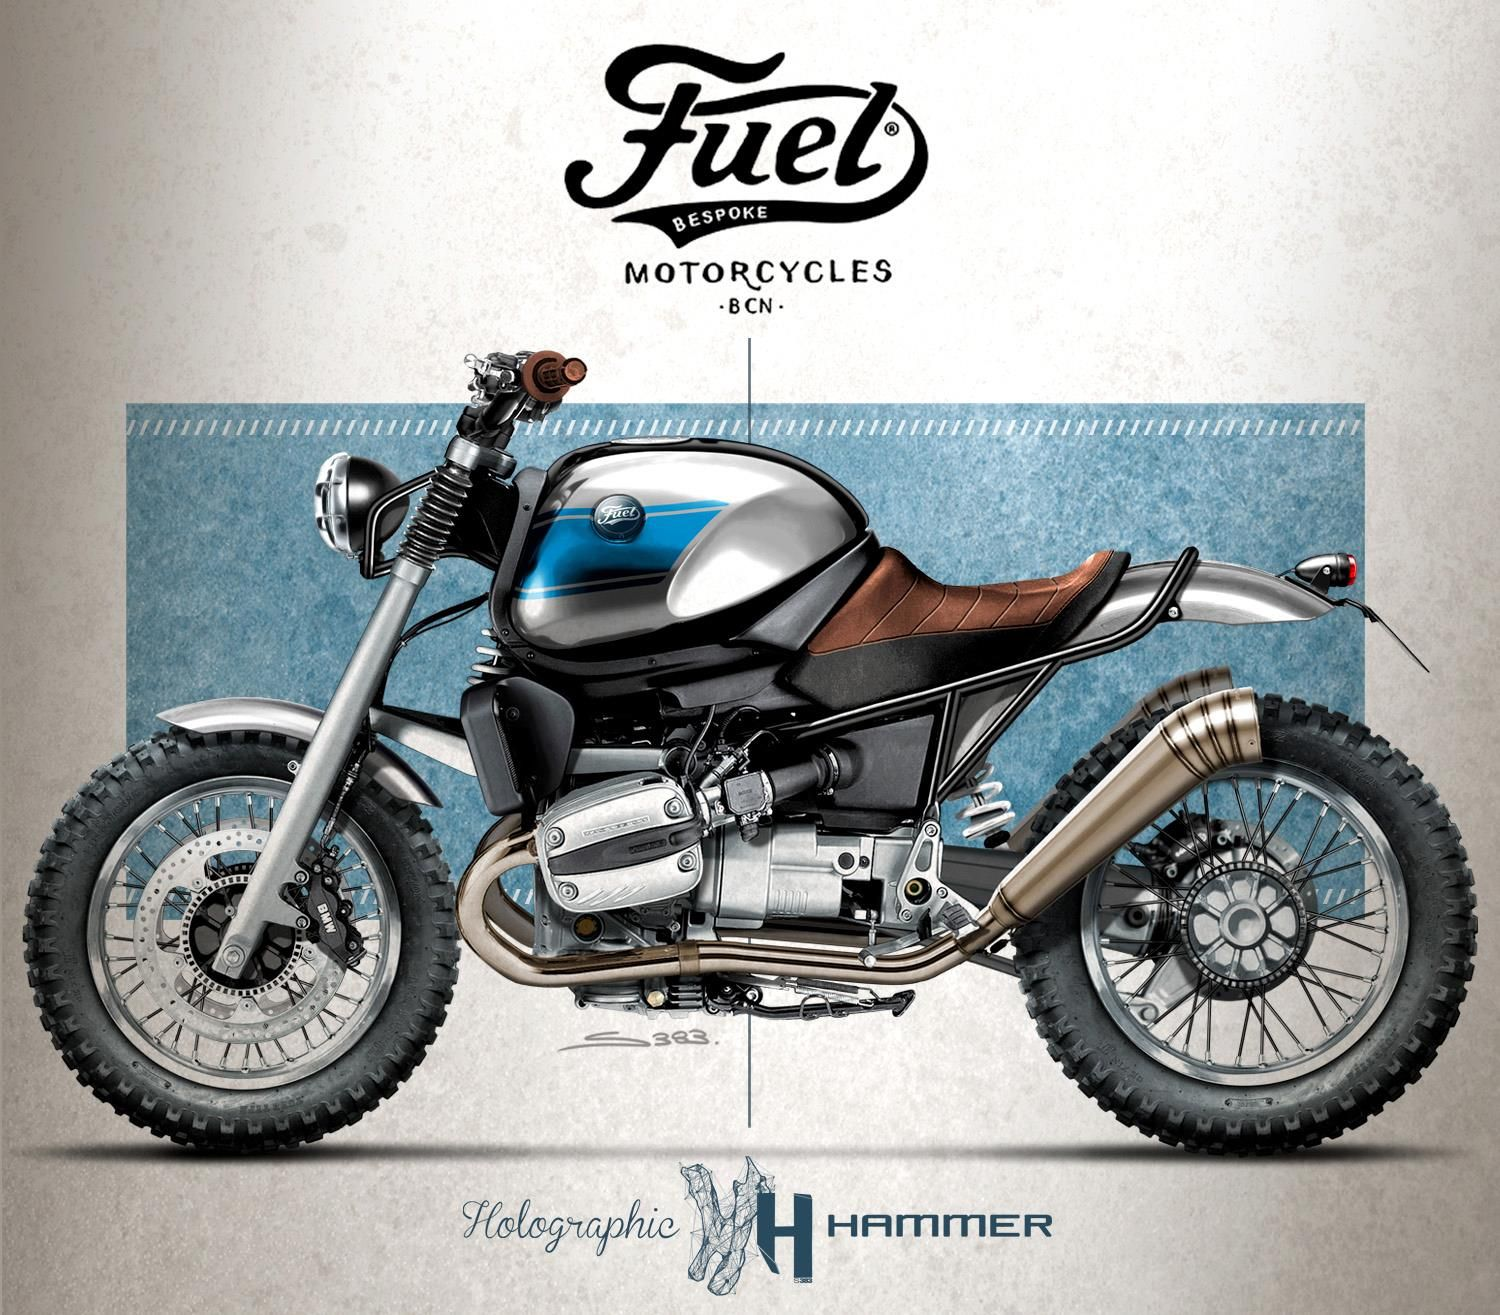 hight resolution of fuel bespoke bmw r1100r scrambler by holographic hammer